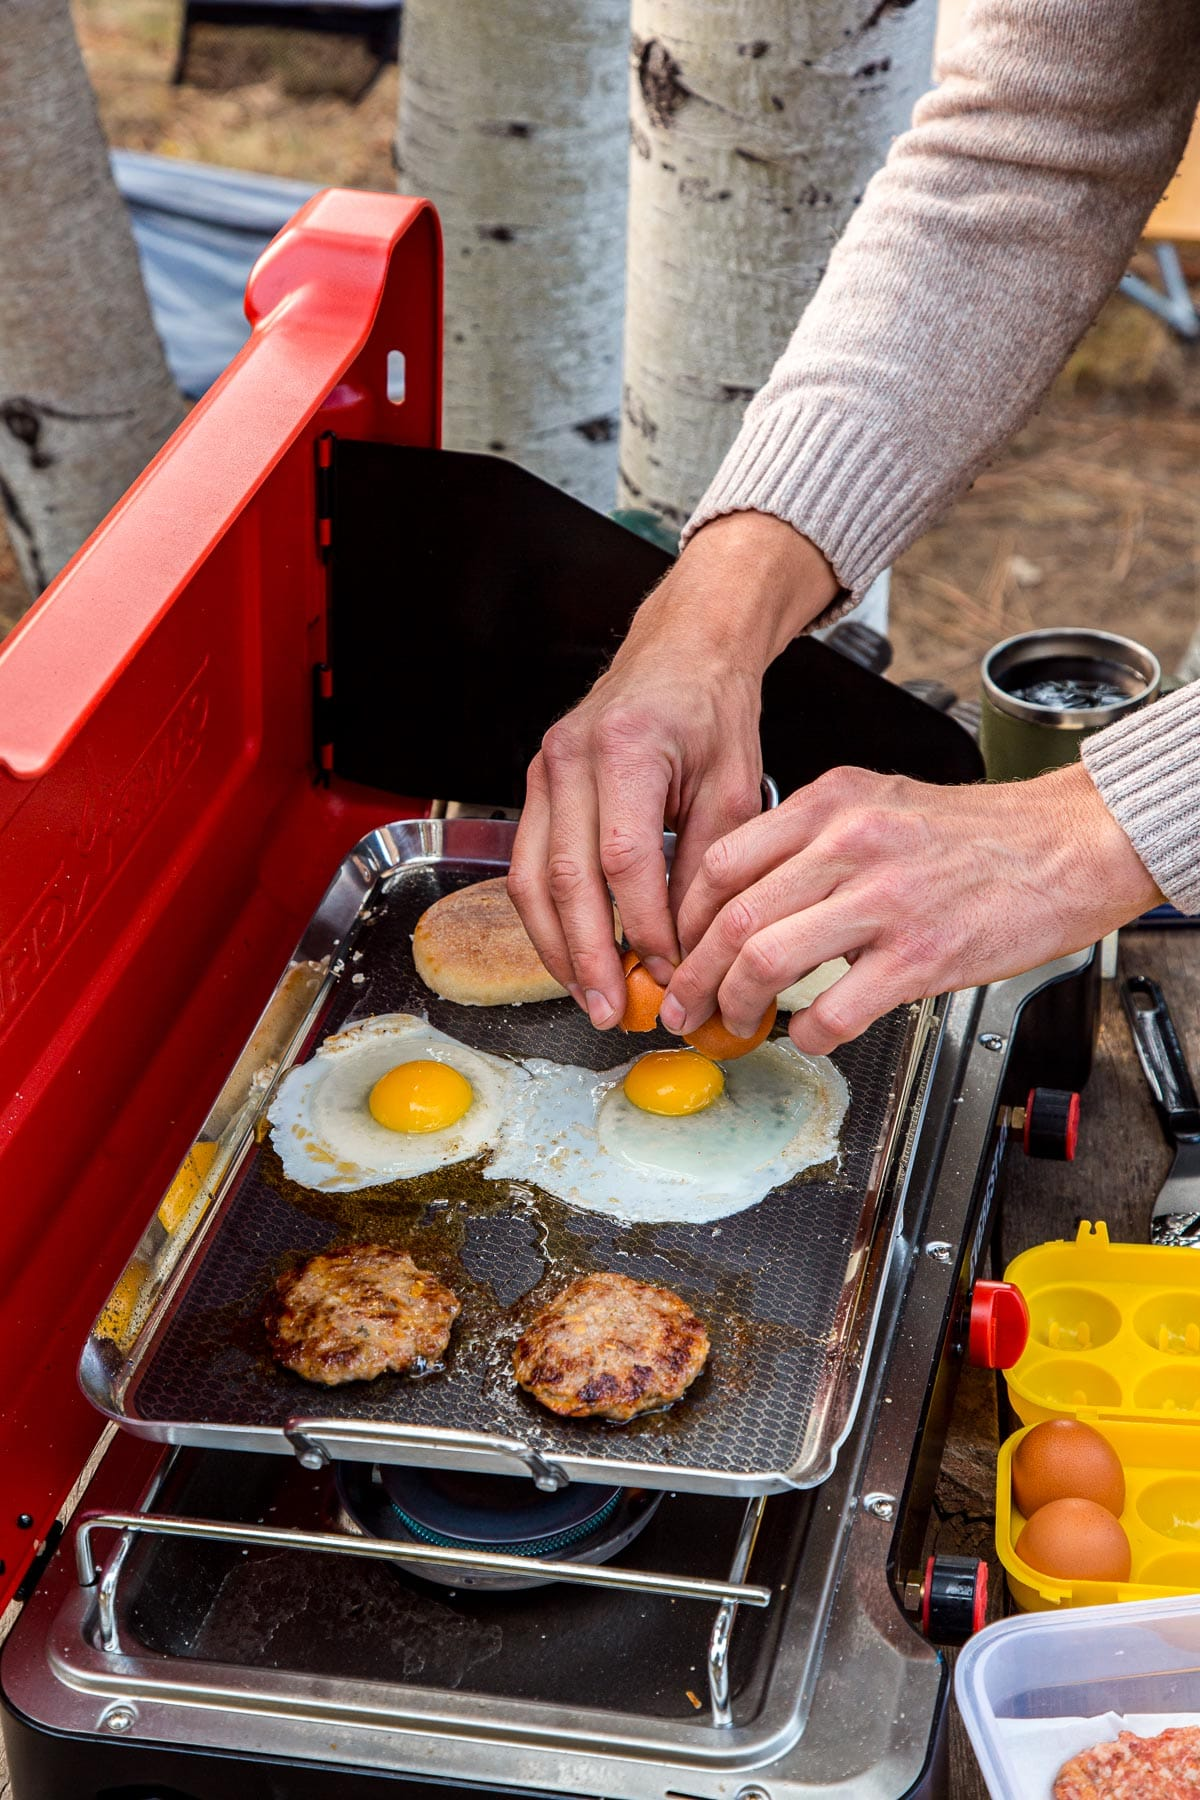 Michael is cracking an egg onto a griddle on a camp stove.